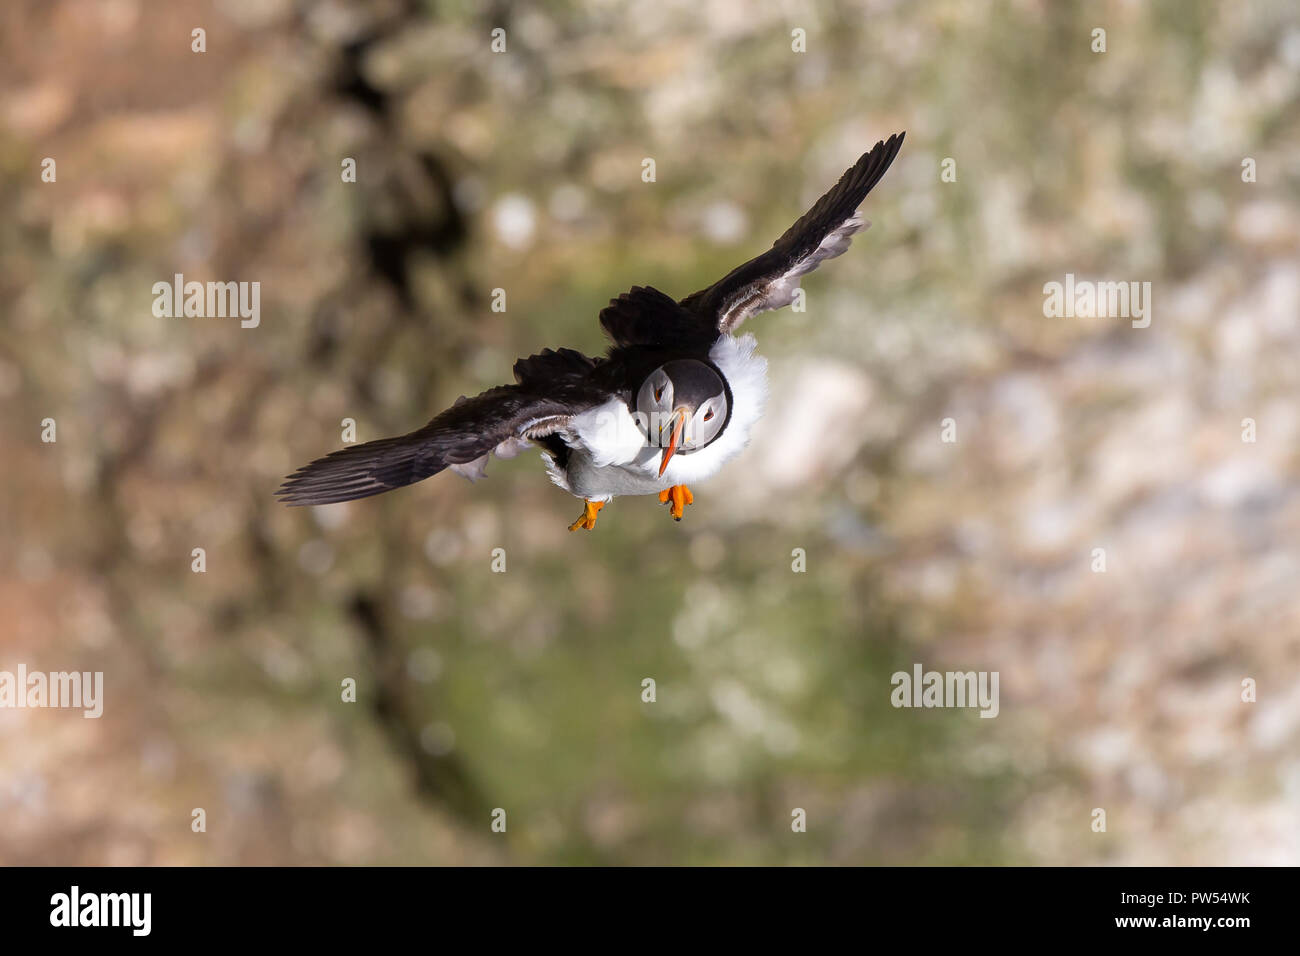 Landscape, aerial close up of one wild adult puffin (Fratercula arctica) flying in the breeze, against soft-focus cliffs, approaching head-on flight. - Stock Image